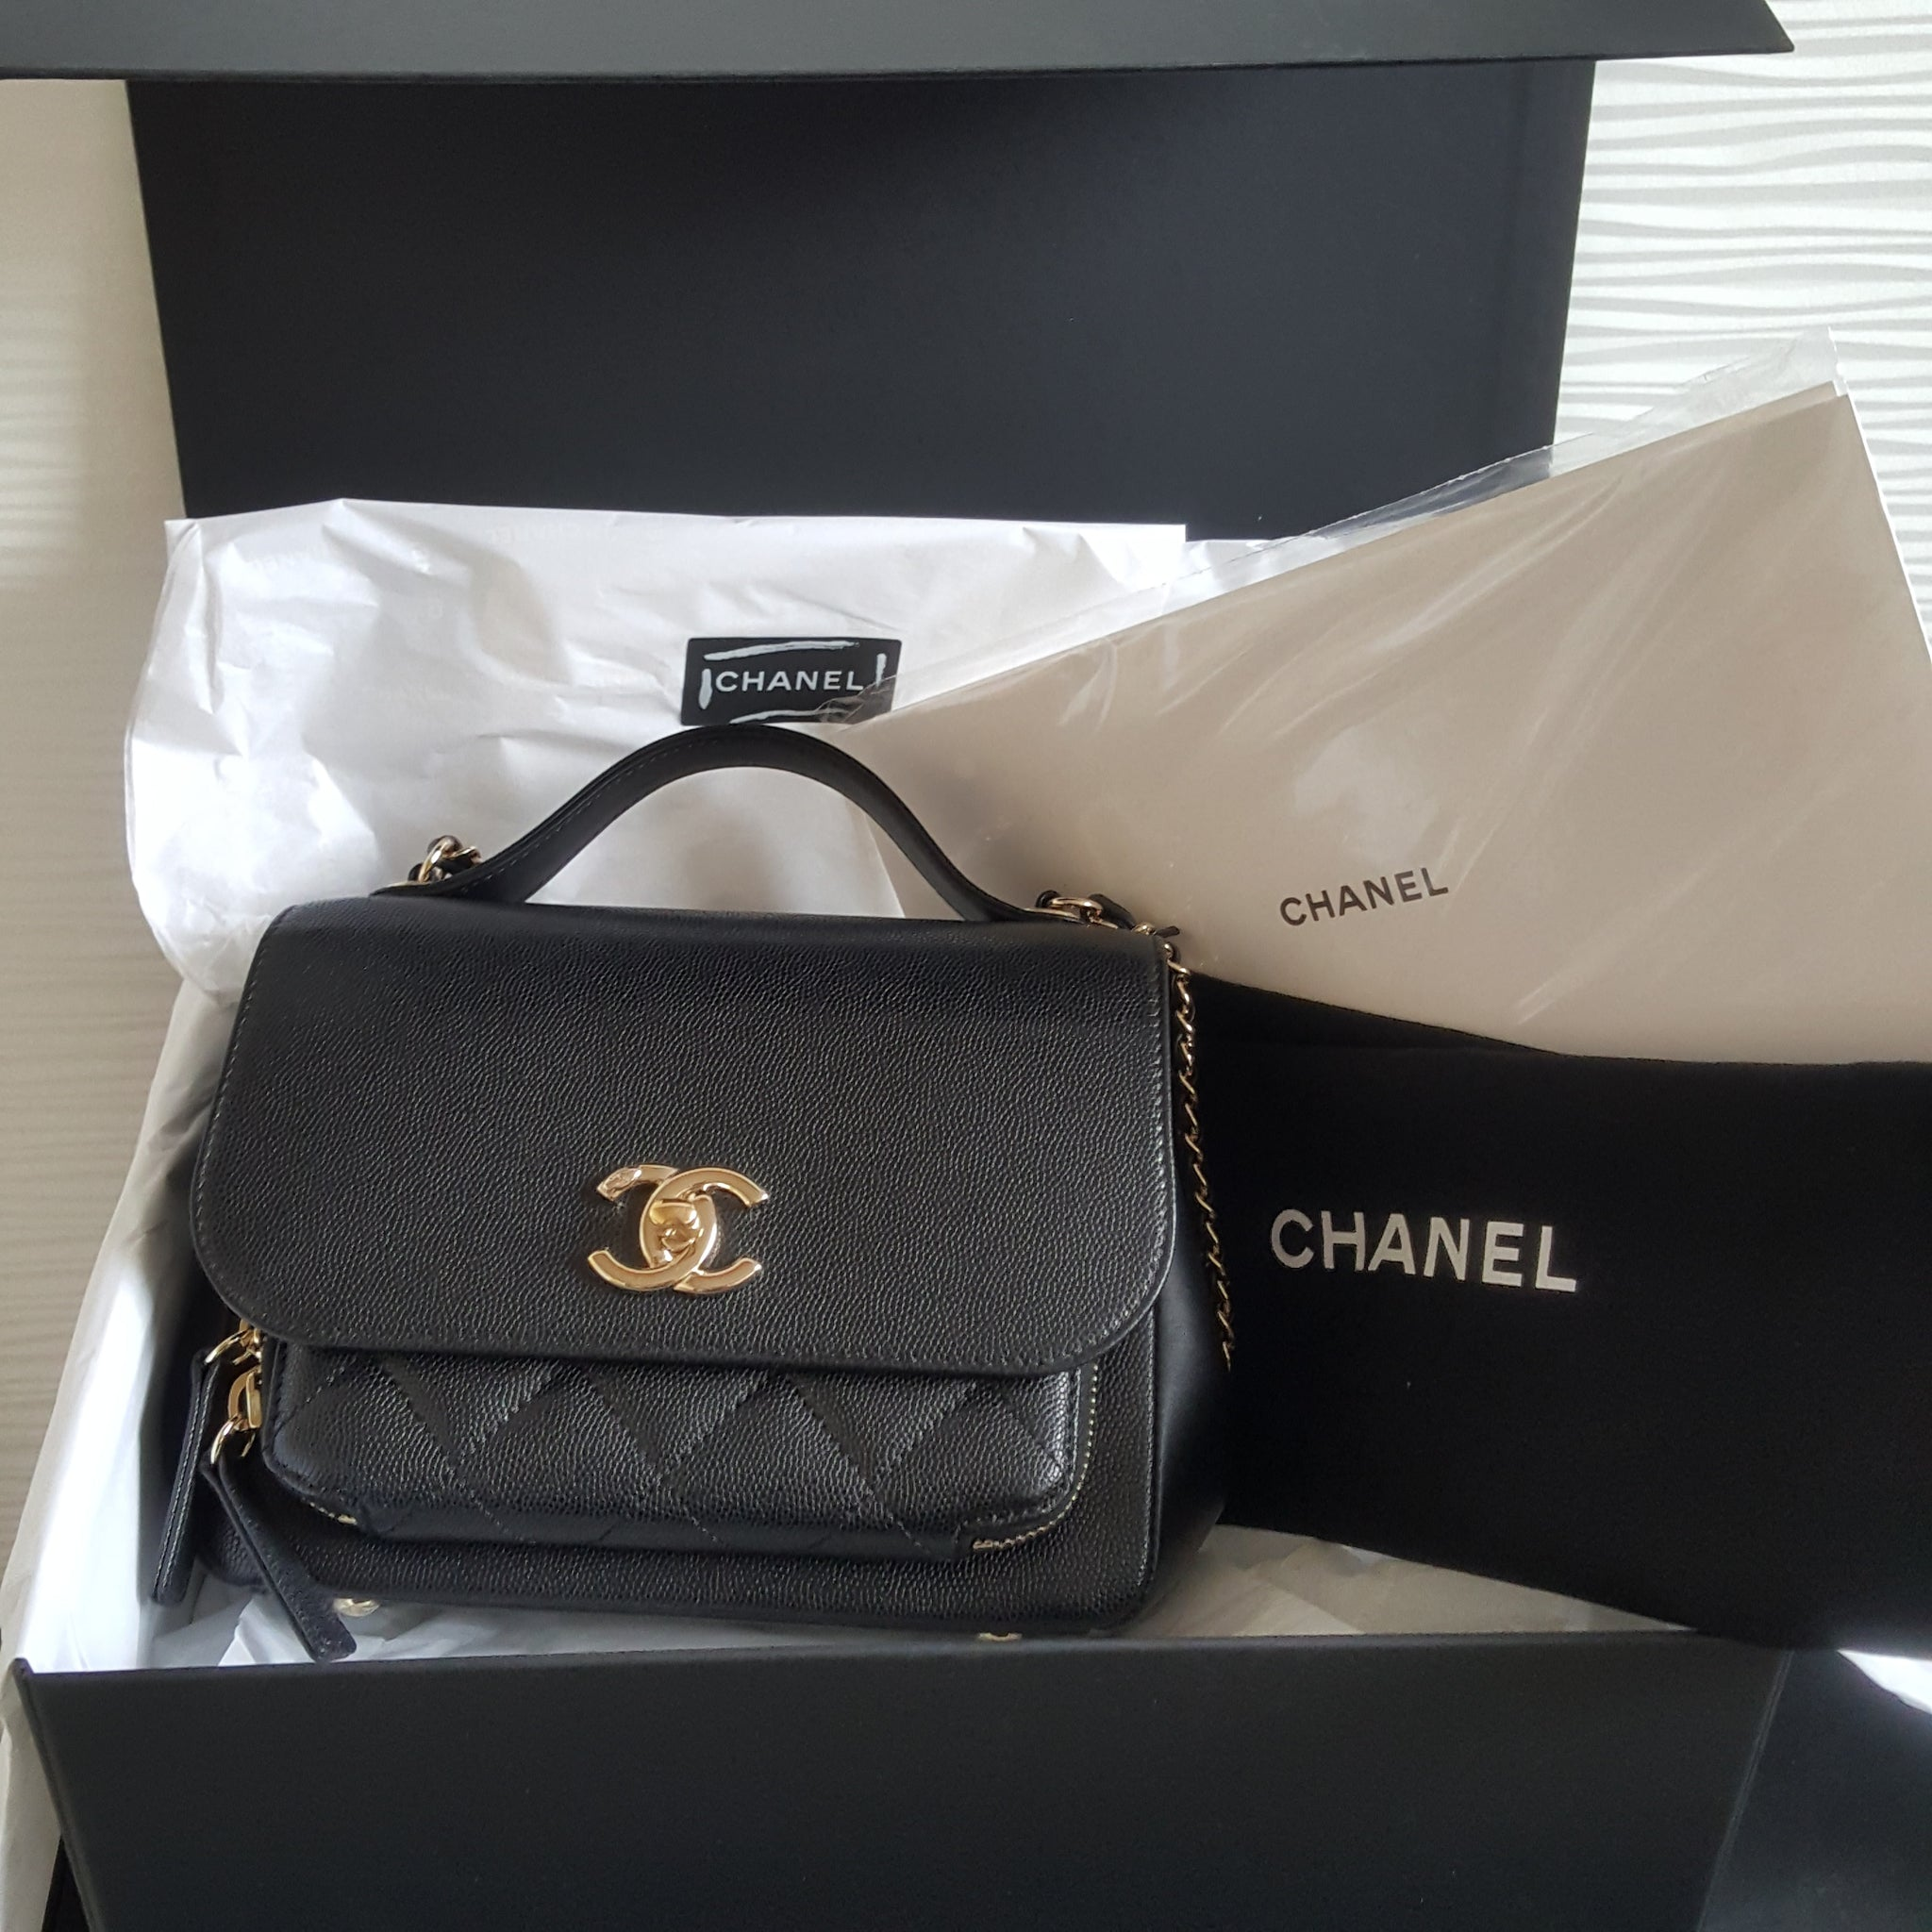 CHANEL BLACK GRAINED CALFSKIN FLAP BAG WITH TOP HANDLE (MINI)